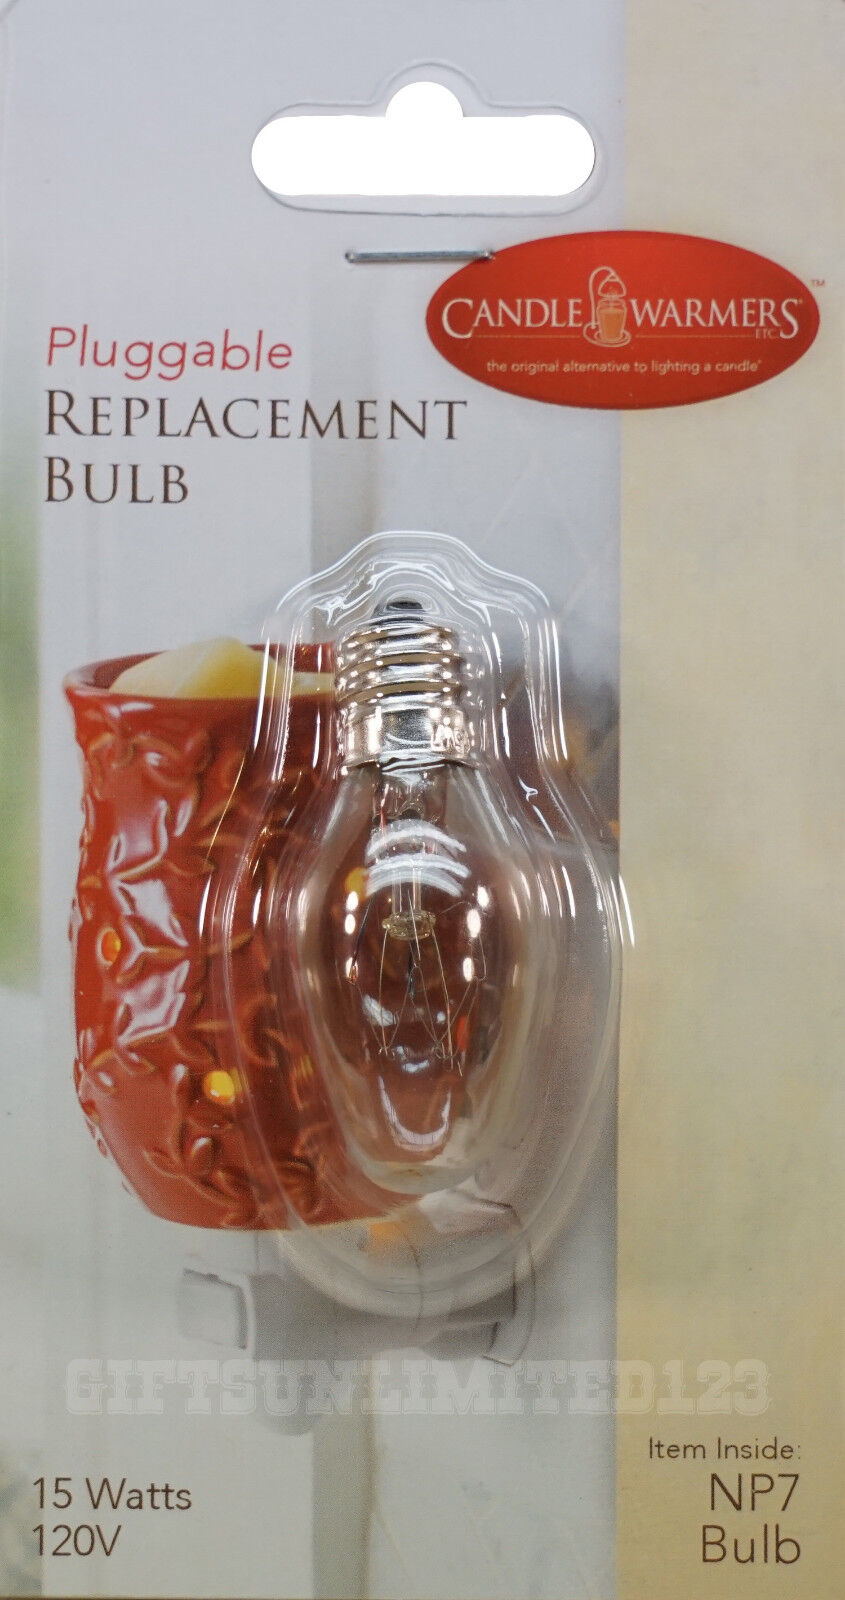 CANDLE WARMERS ETC Pluggable Replacement Bulb NP7 15 Watts 1